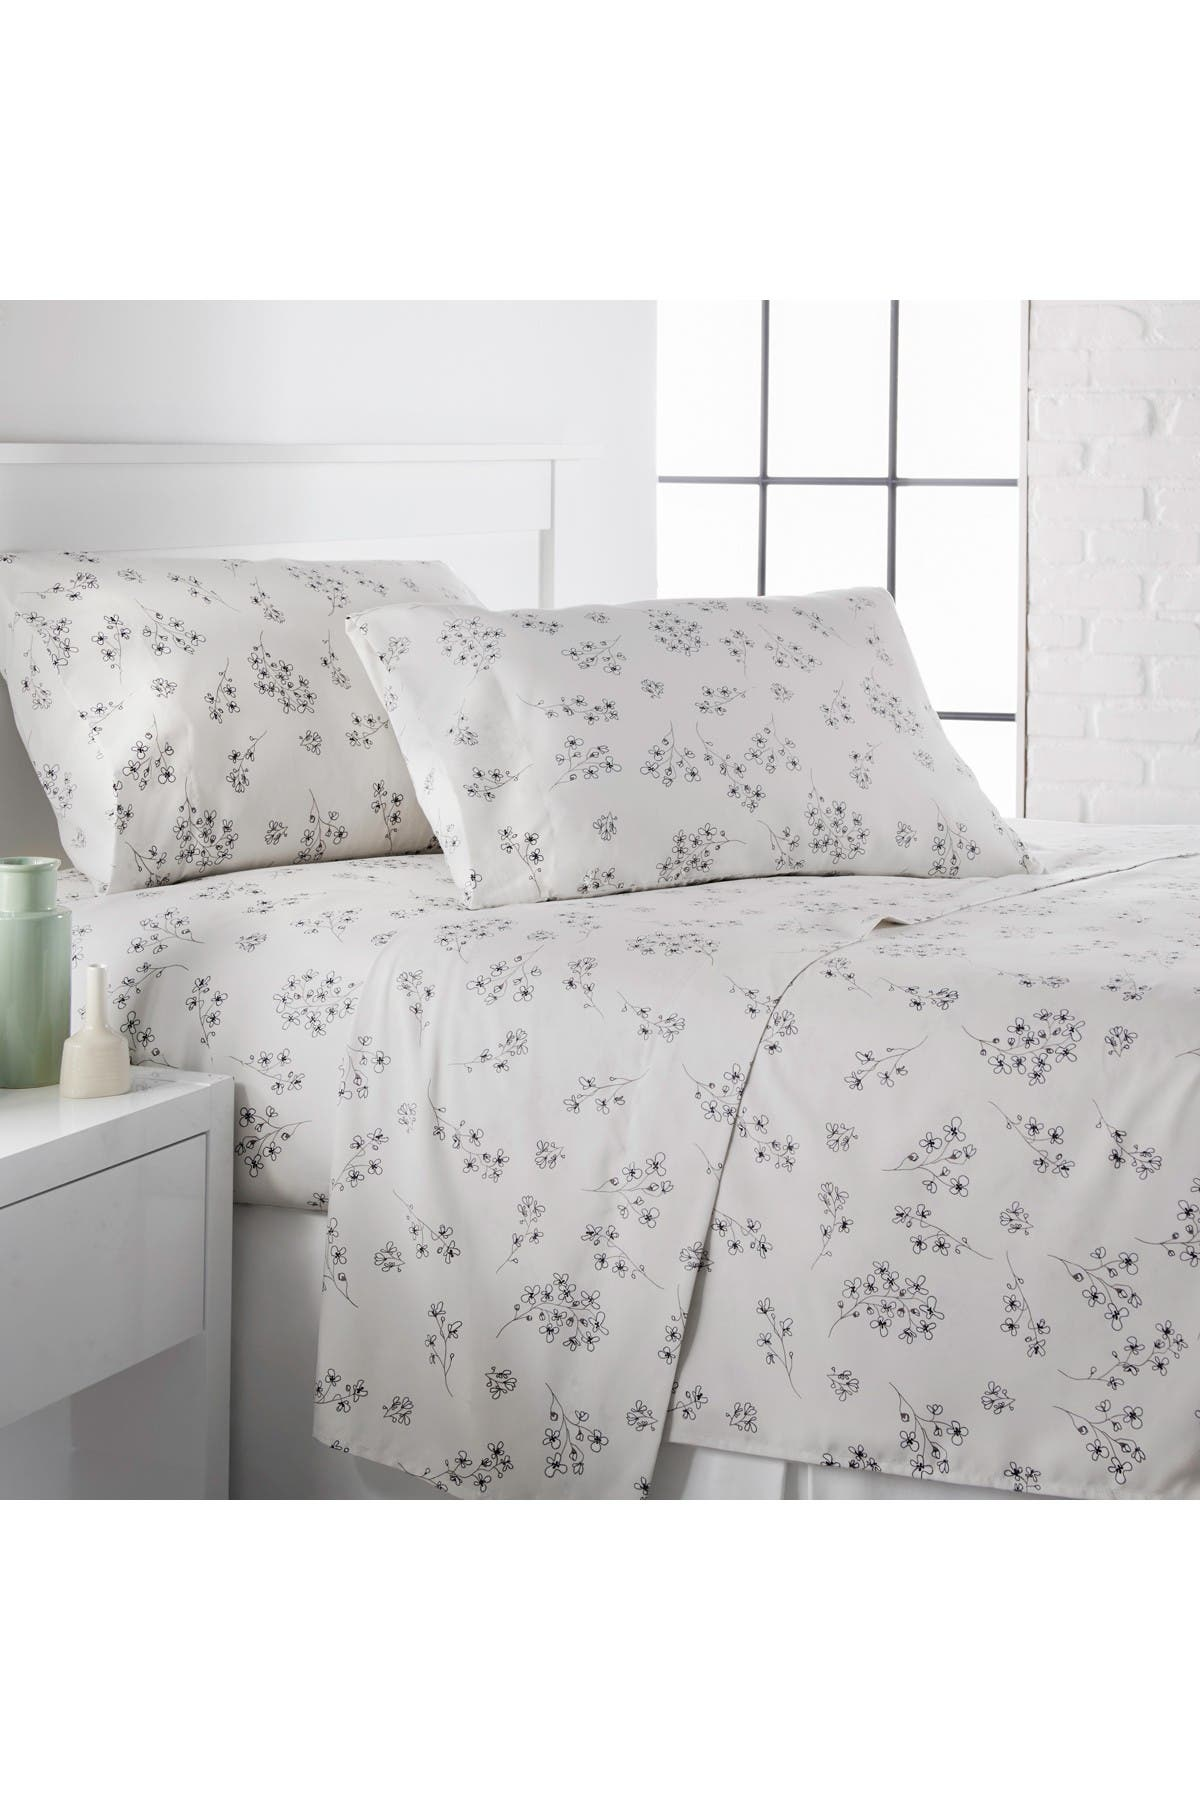 Image of SOUTHSHORE FINE LINENS Queen Premium Collection Printed Deep Pocket Sheet Sets - Sweet Florals Lunar Grey